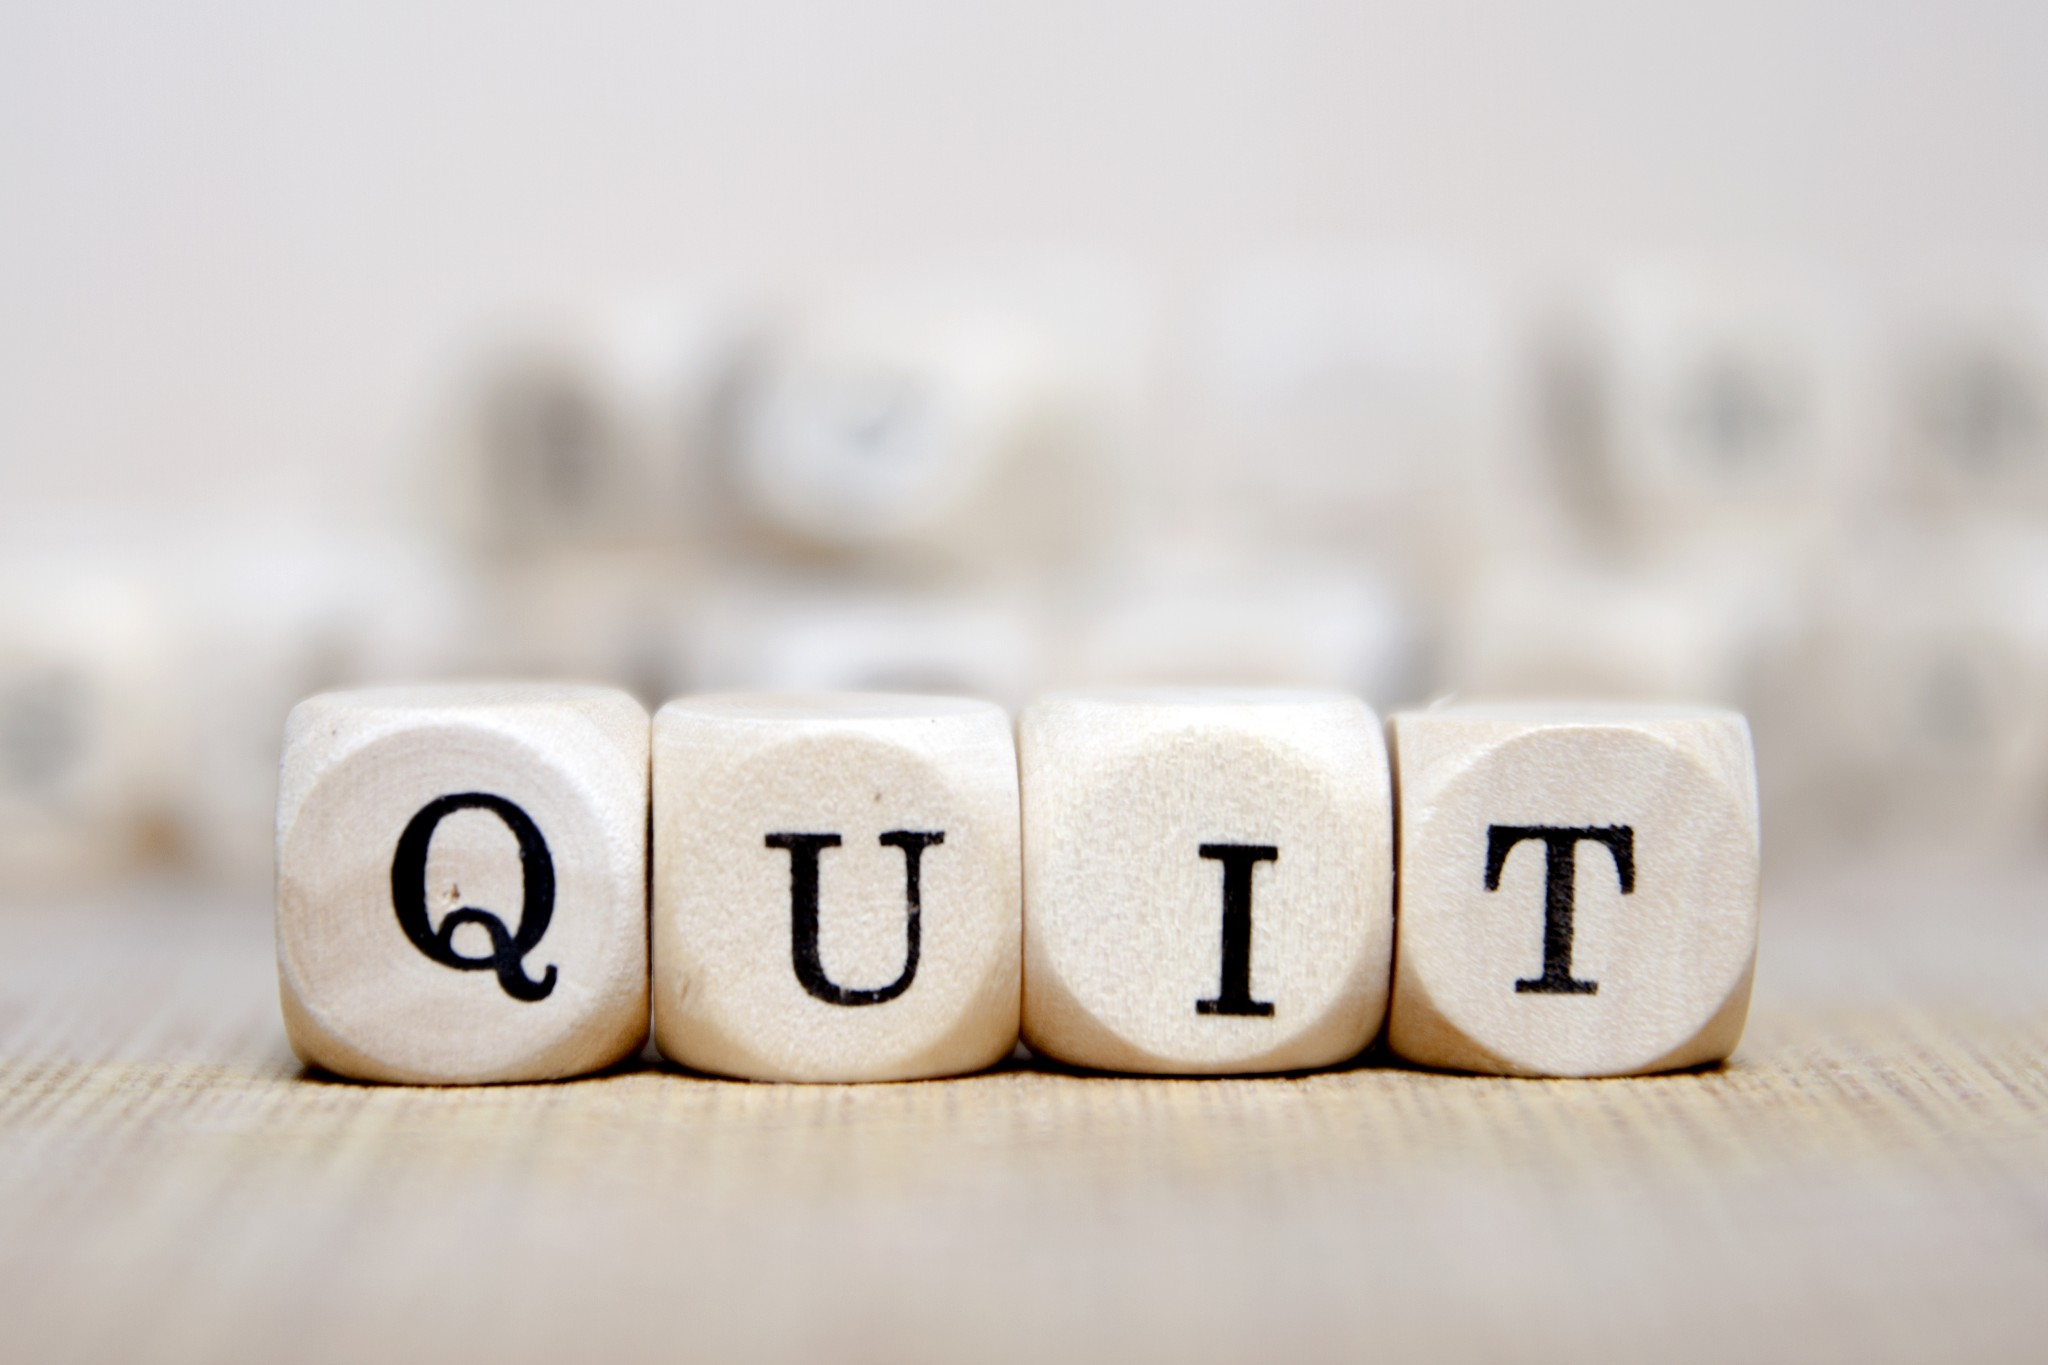 Sunk cost and opportunity cost explain the low quit rate during the great recession.